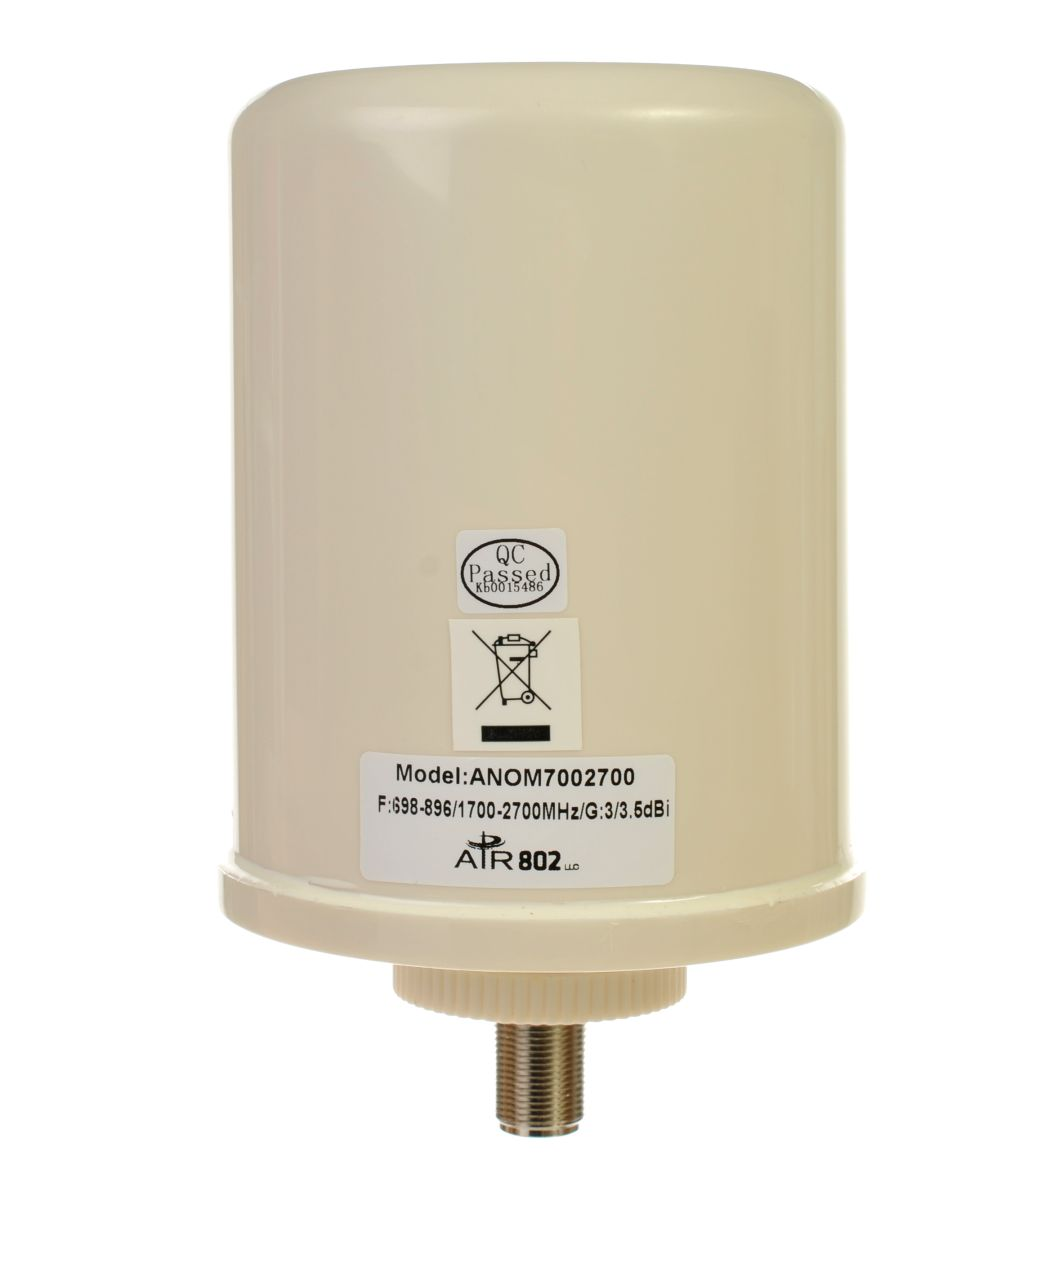 ANOM7002700 Ceiling Mount Cellular and WiFi Antenna for 698 to 896 and 1700 to 2700 MHz with 3.5 dBi and N Female Connector